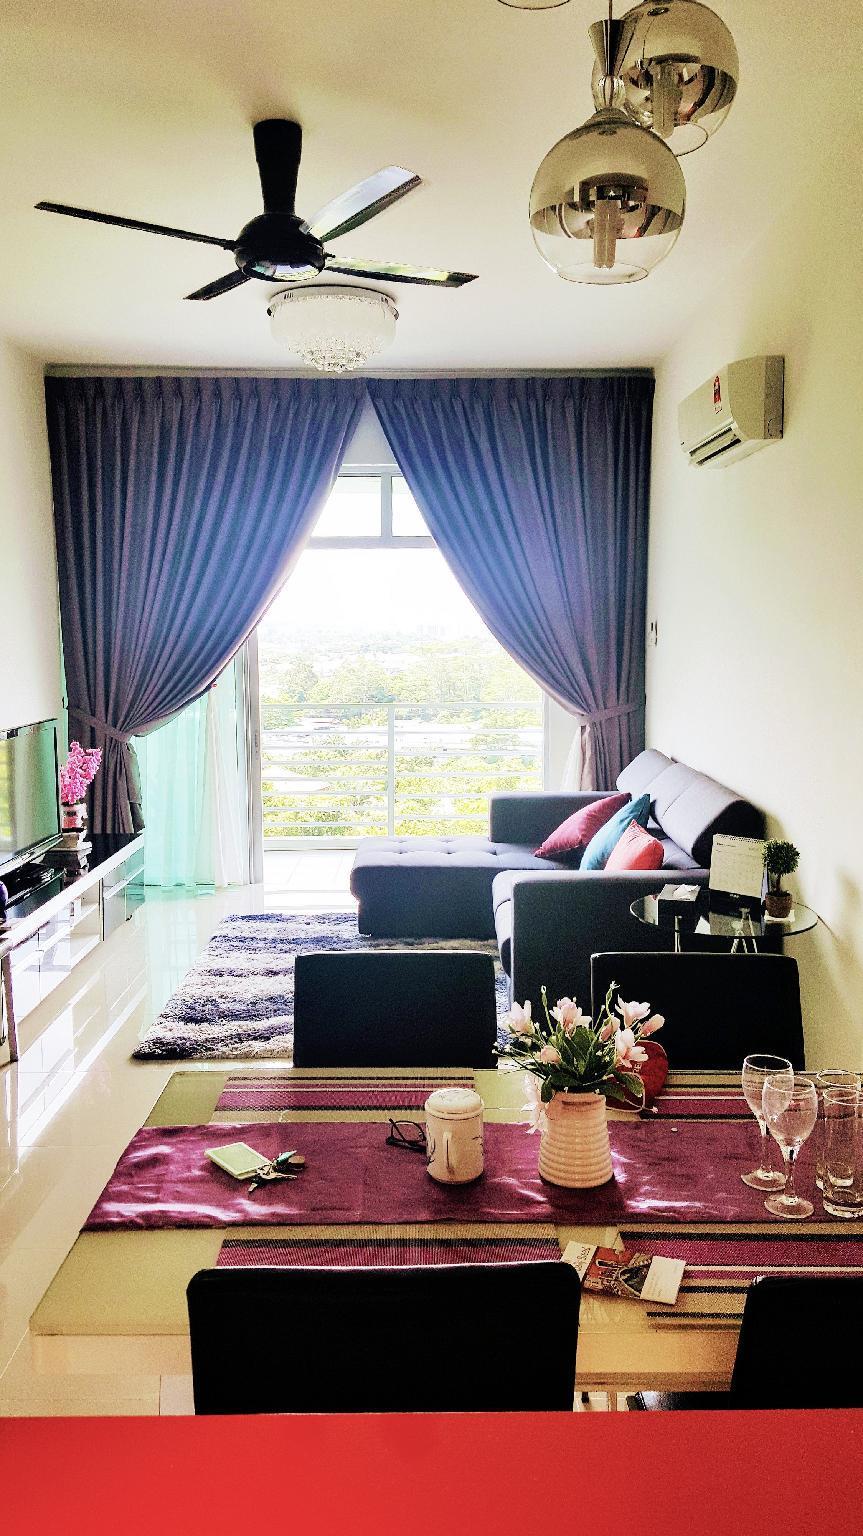 A Simple Home At SkyVilla Residences